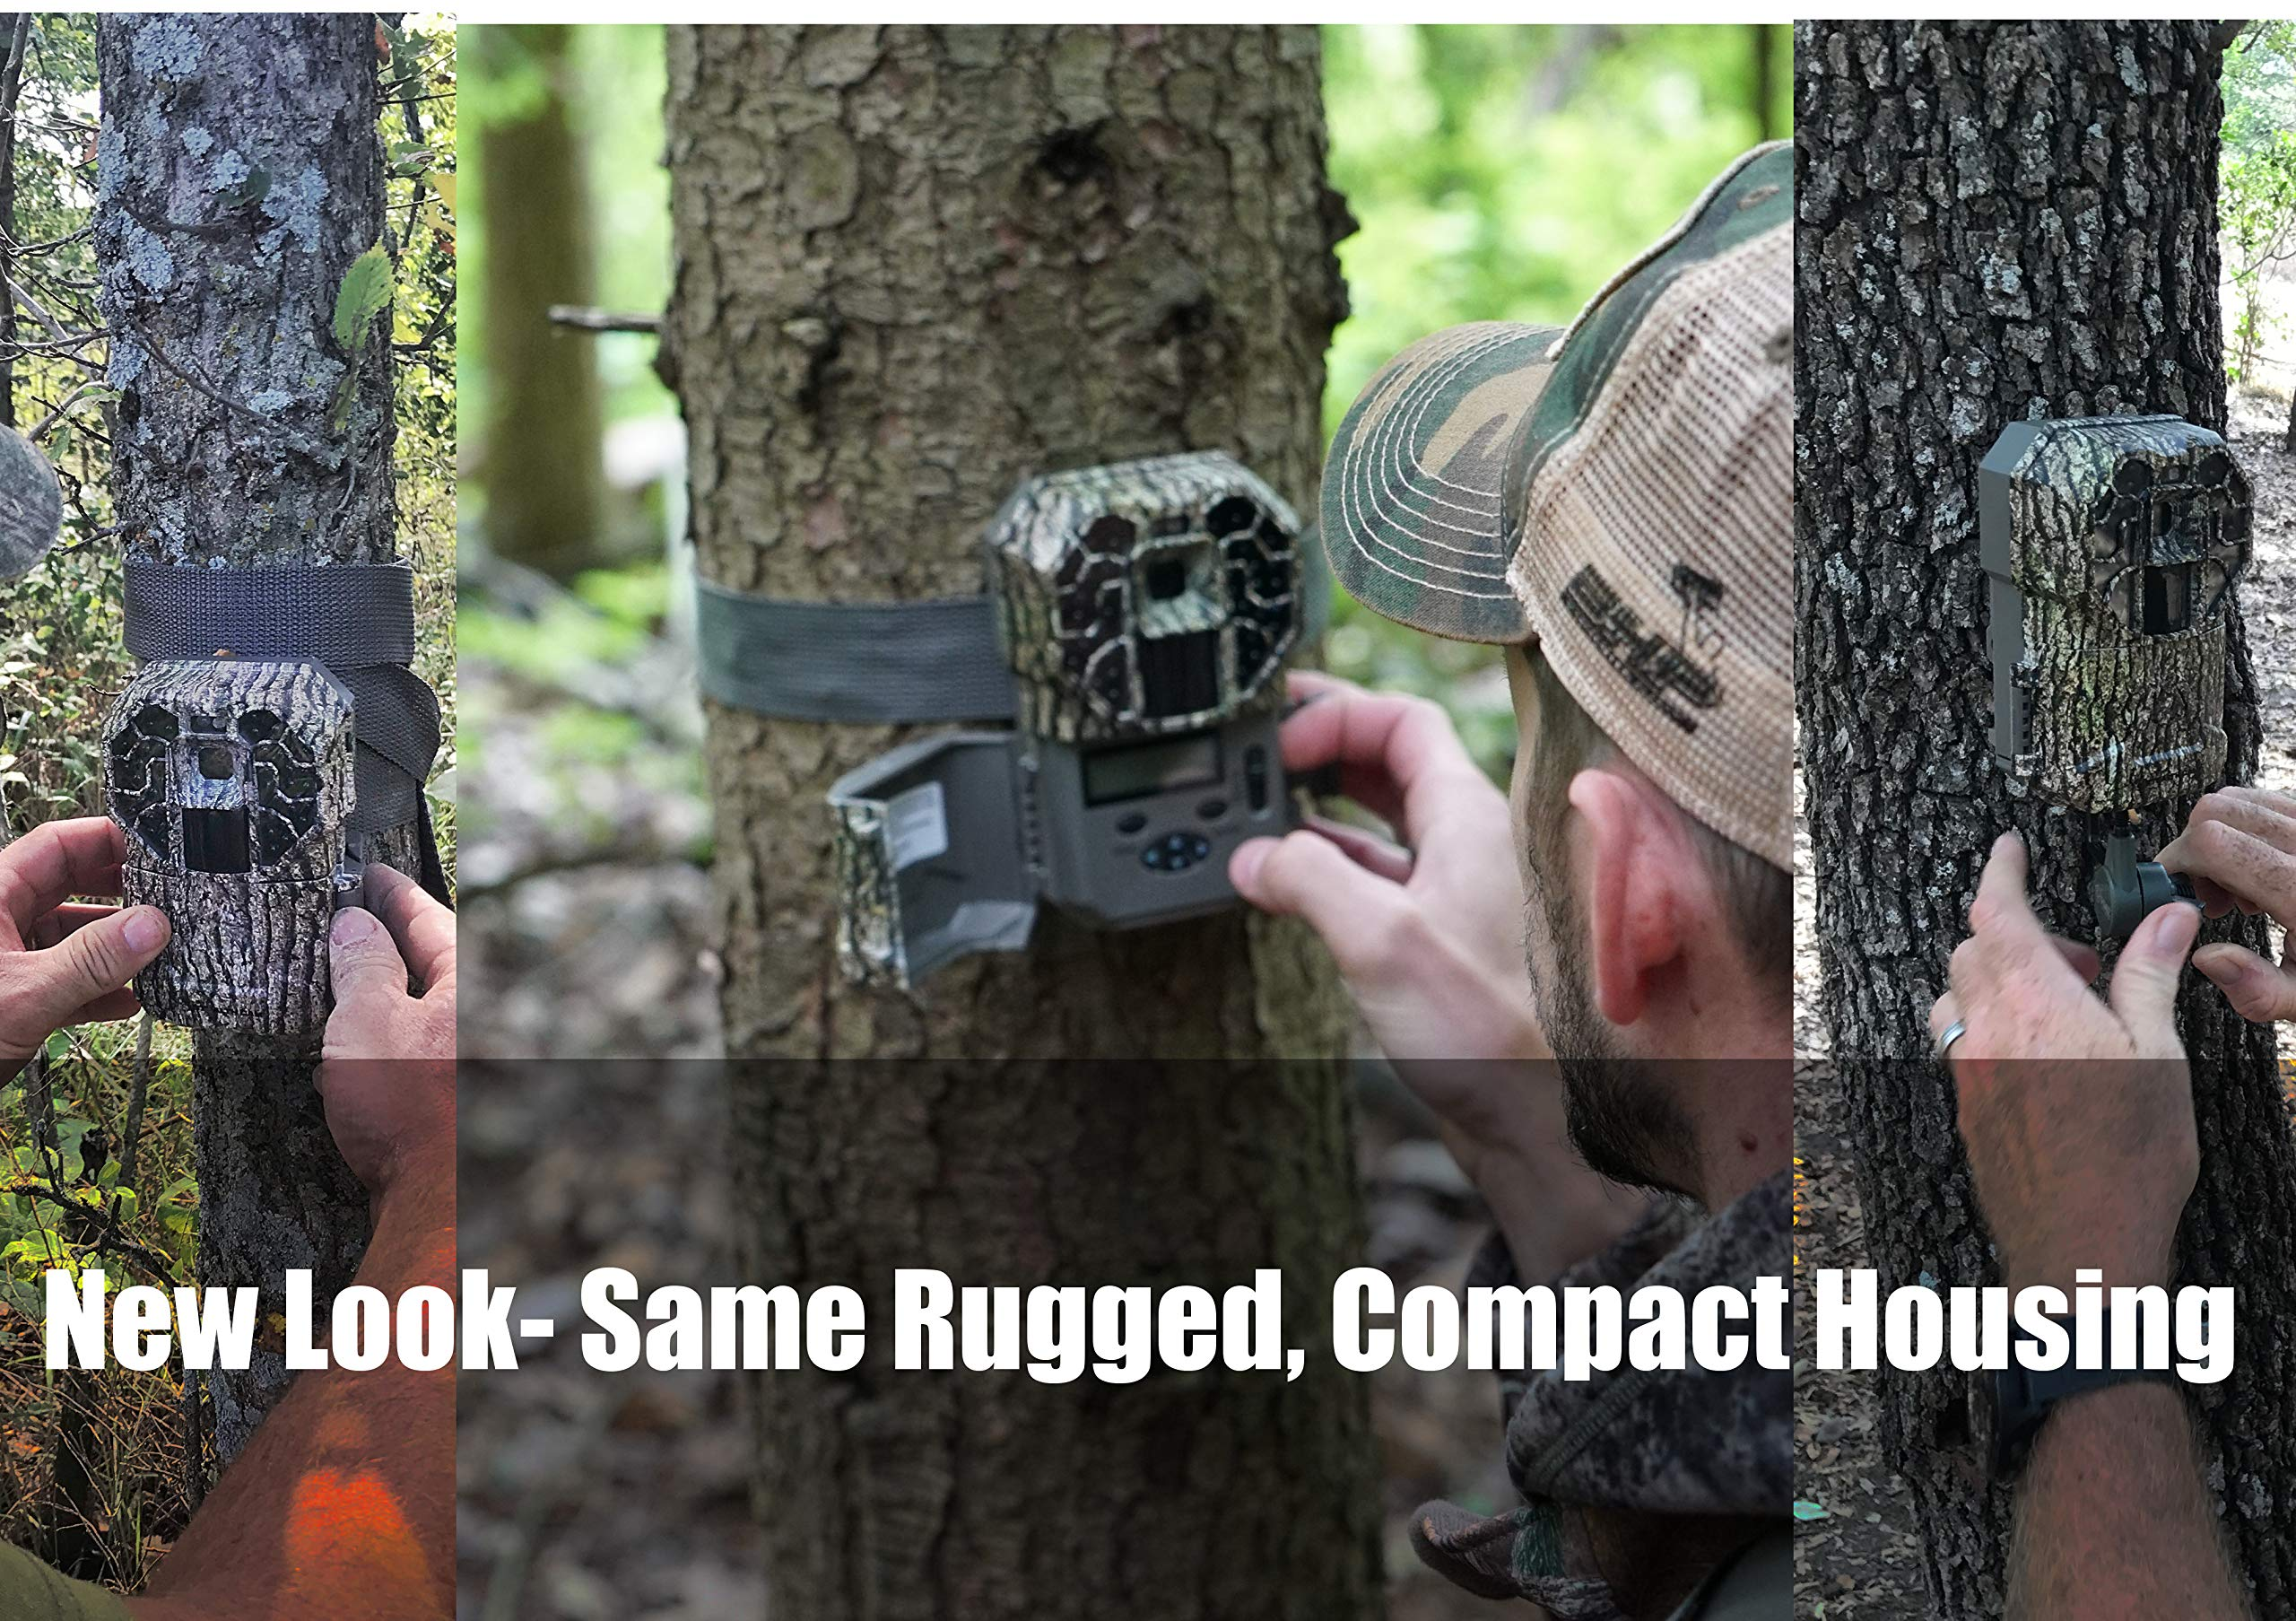 Stealth Cam G45NGX 22MP HD1080 Game Camera- 45 No Glo Emitters, Low Light Sensitivity, Blur Reduction, Sub 1 Second Trigger, Multi Zone Detection